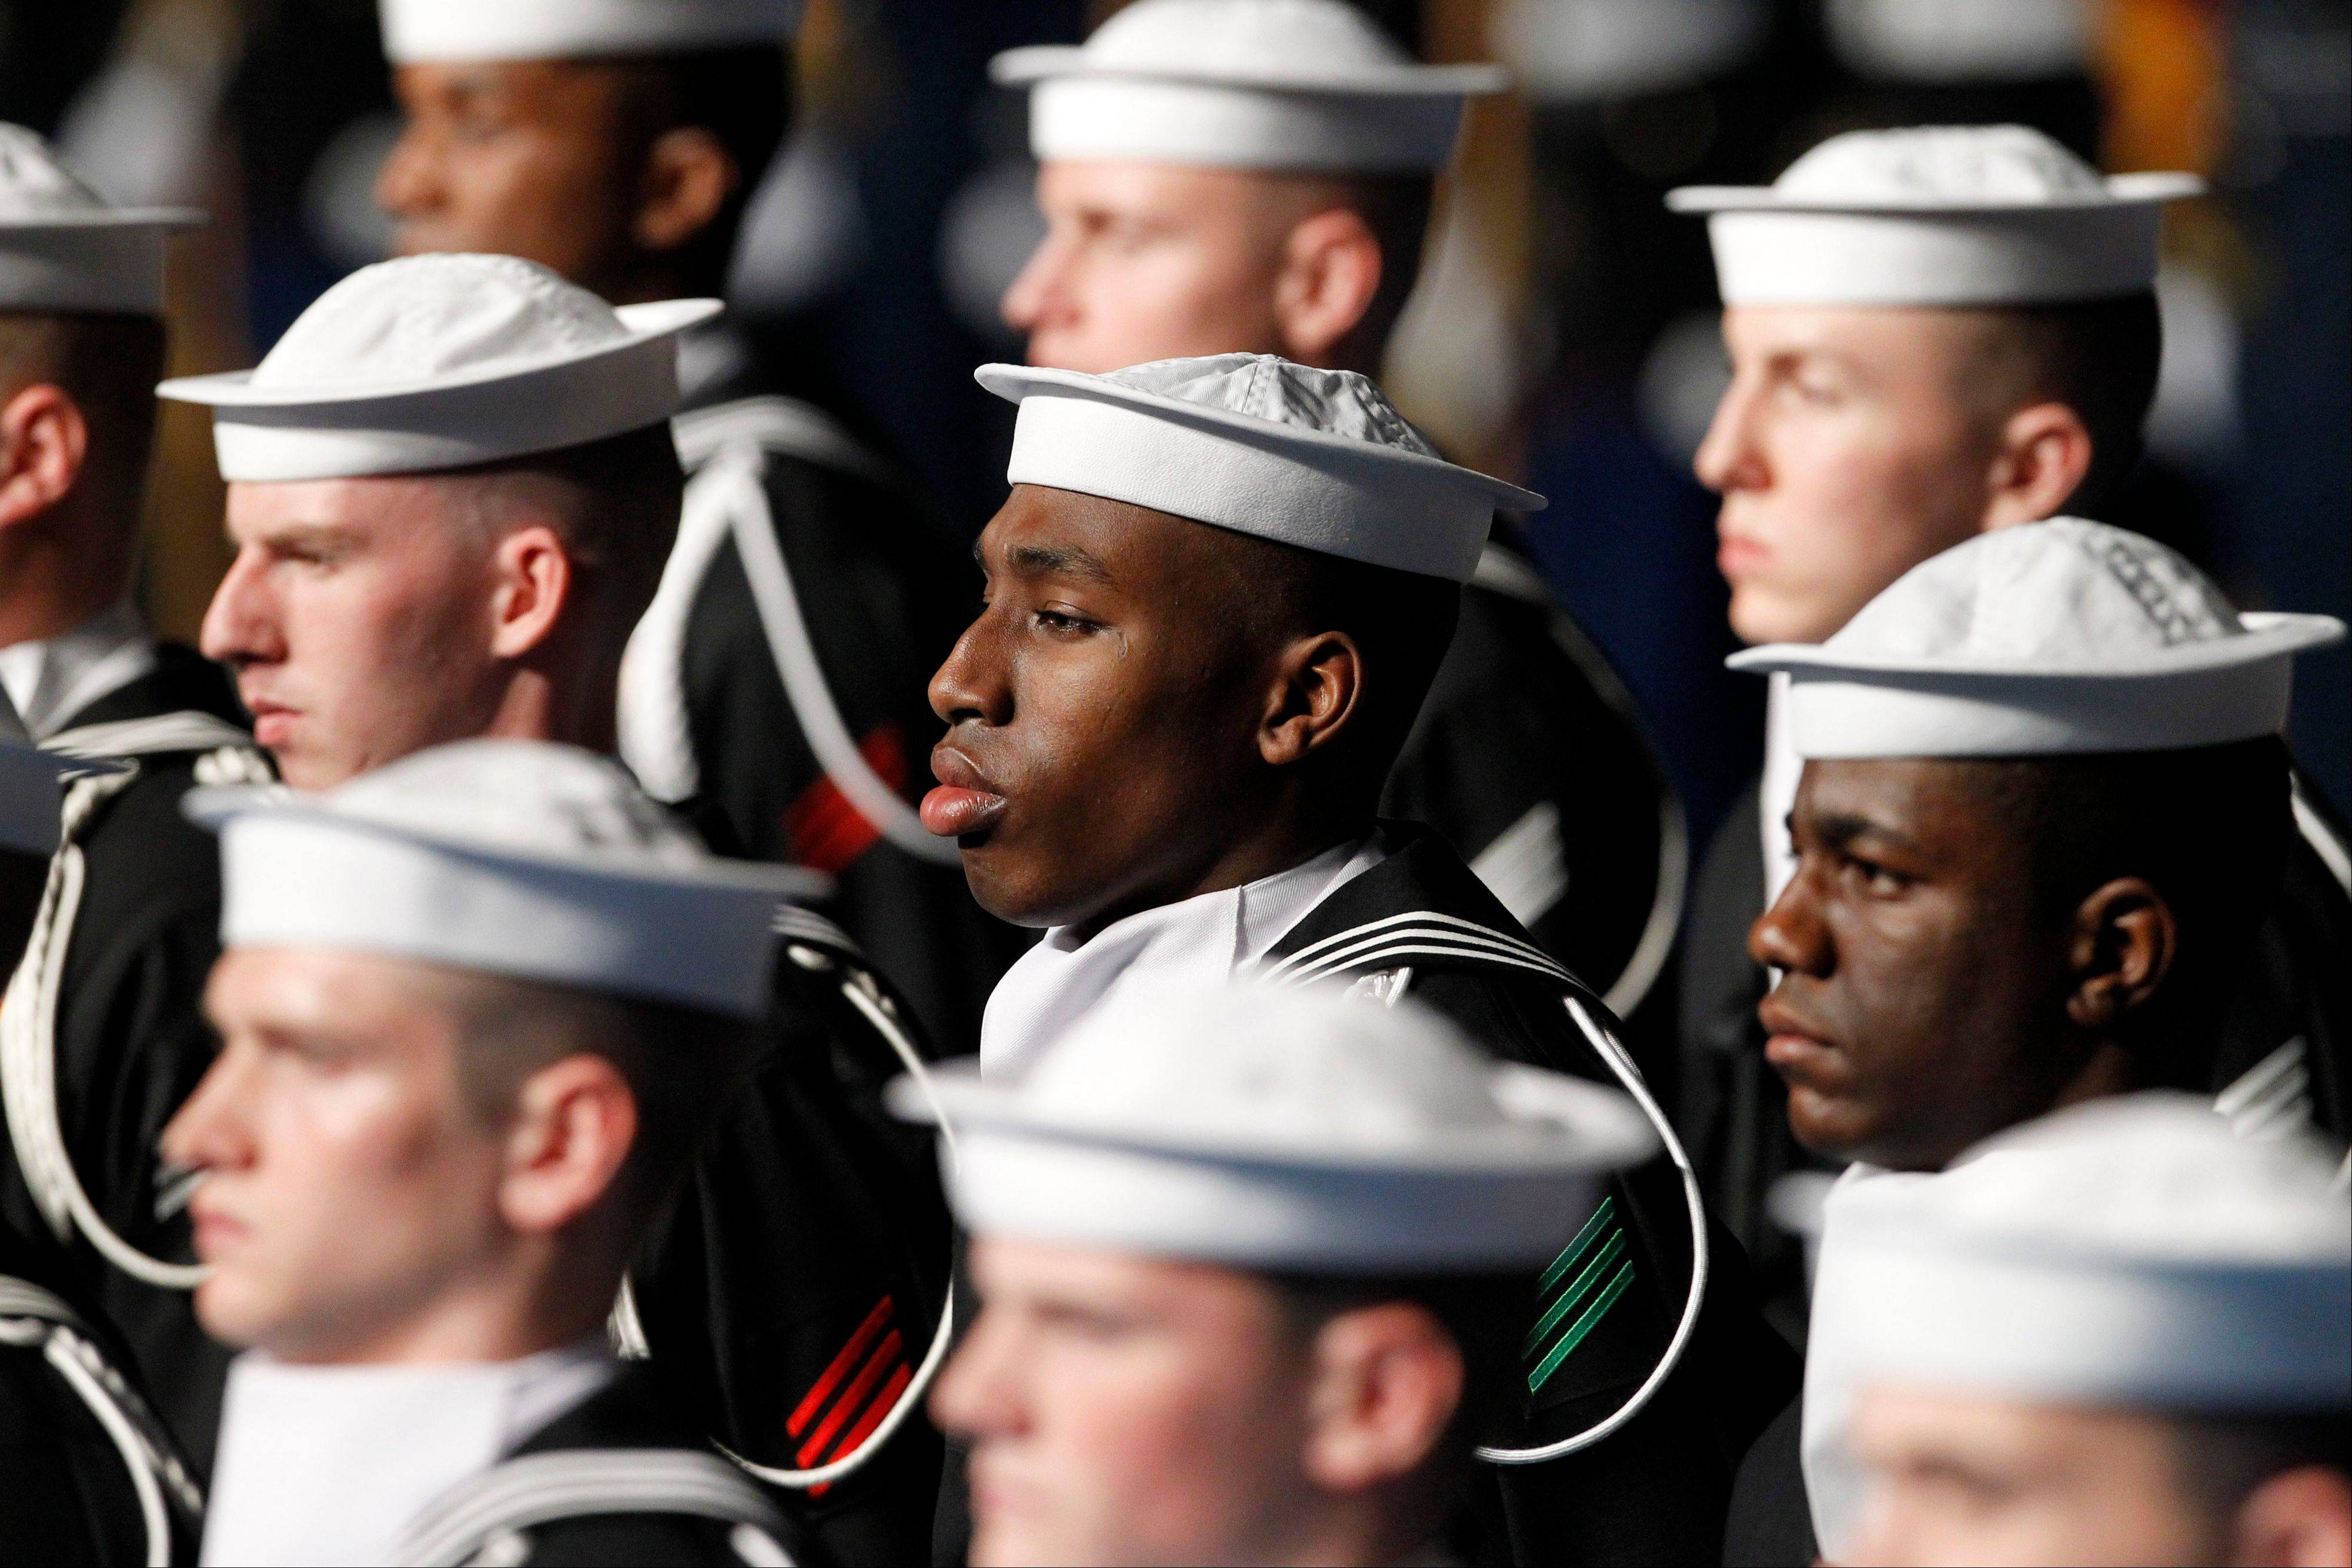 Members of the U.S. Navy Ceremonial and Guard Company stand Friday during an Armed Forces Farewell Ceremony to honor outgoing Defense Secretary Leon Panetta in Arlington, Va. The Pentagon's announcement this week of its intent to seek a 1 percent raise for the military in 2014 effectively set a cap for a 2014 civilian raise. In no recent year has the civilian raise exceeded the increase for military personnel.